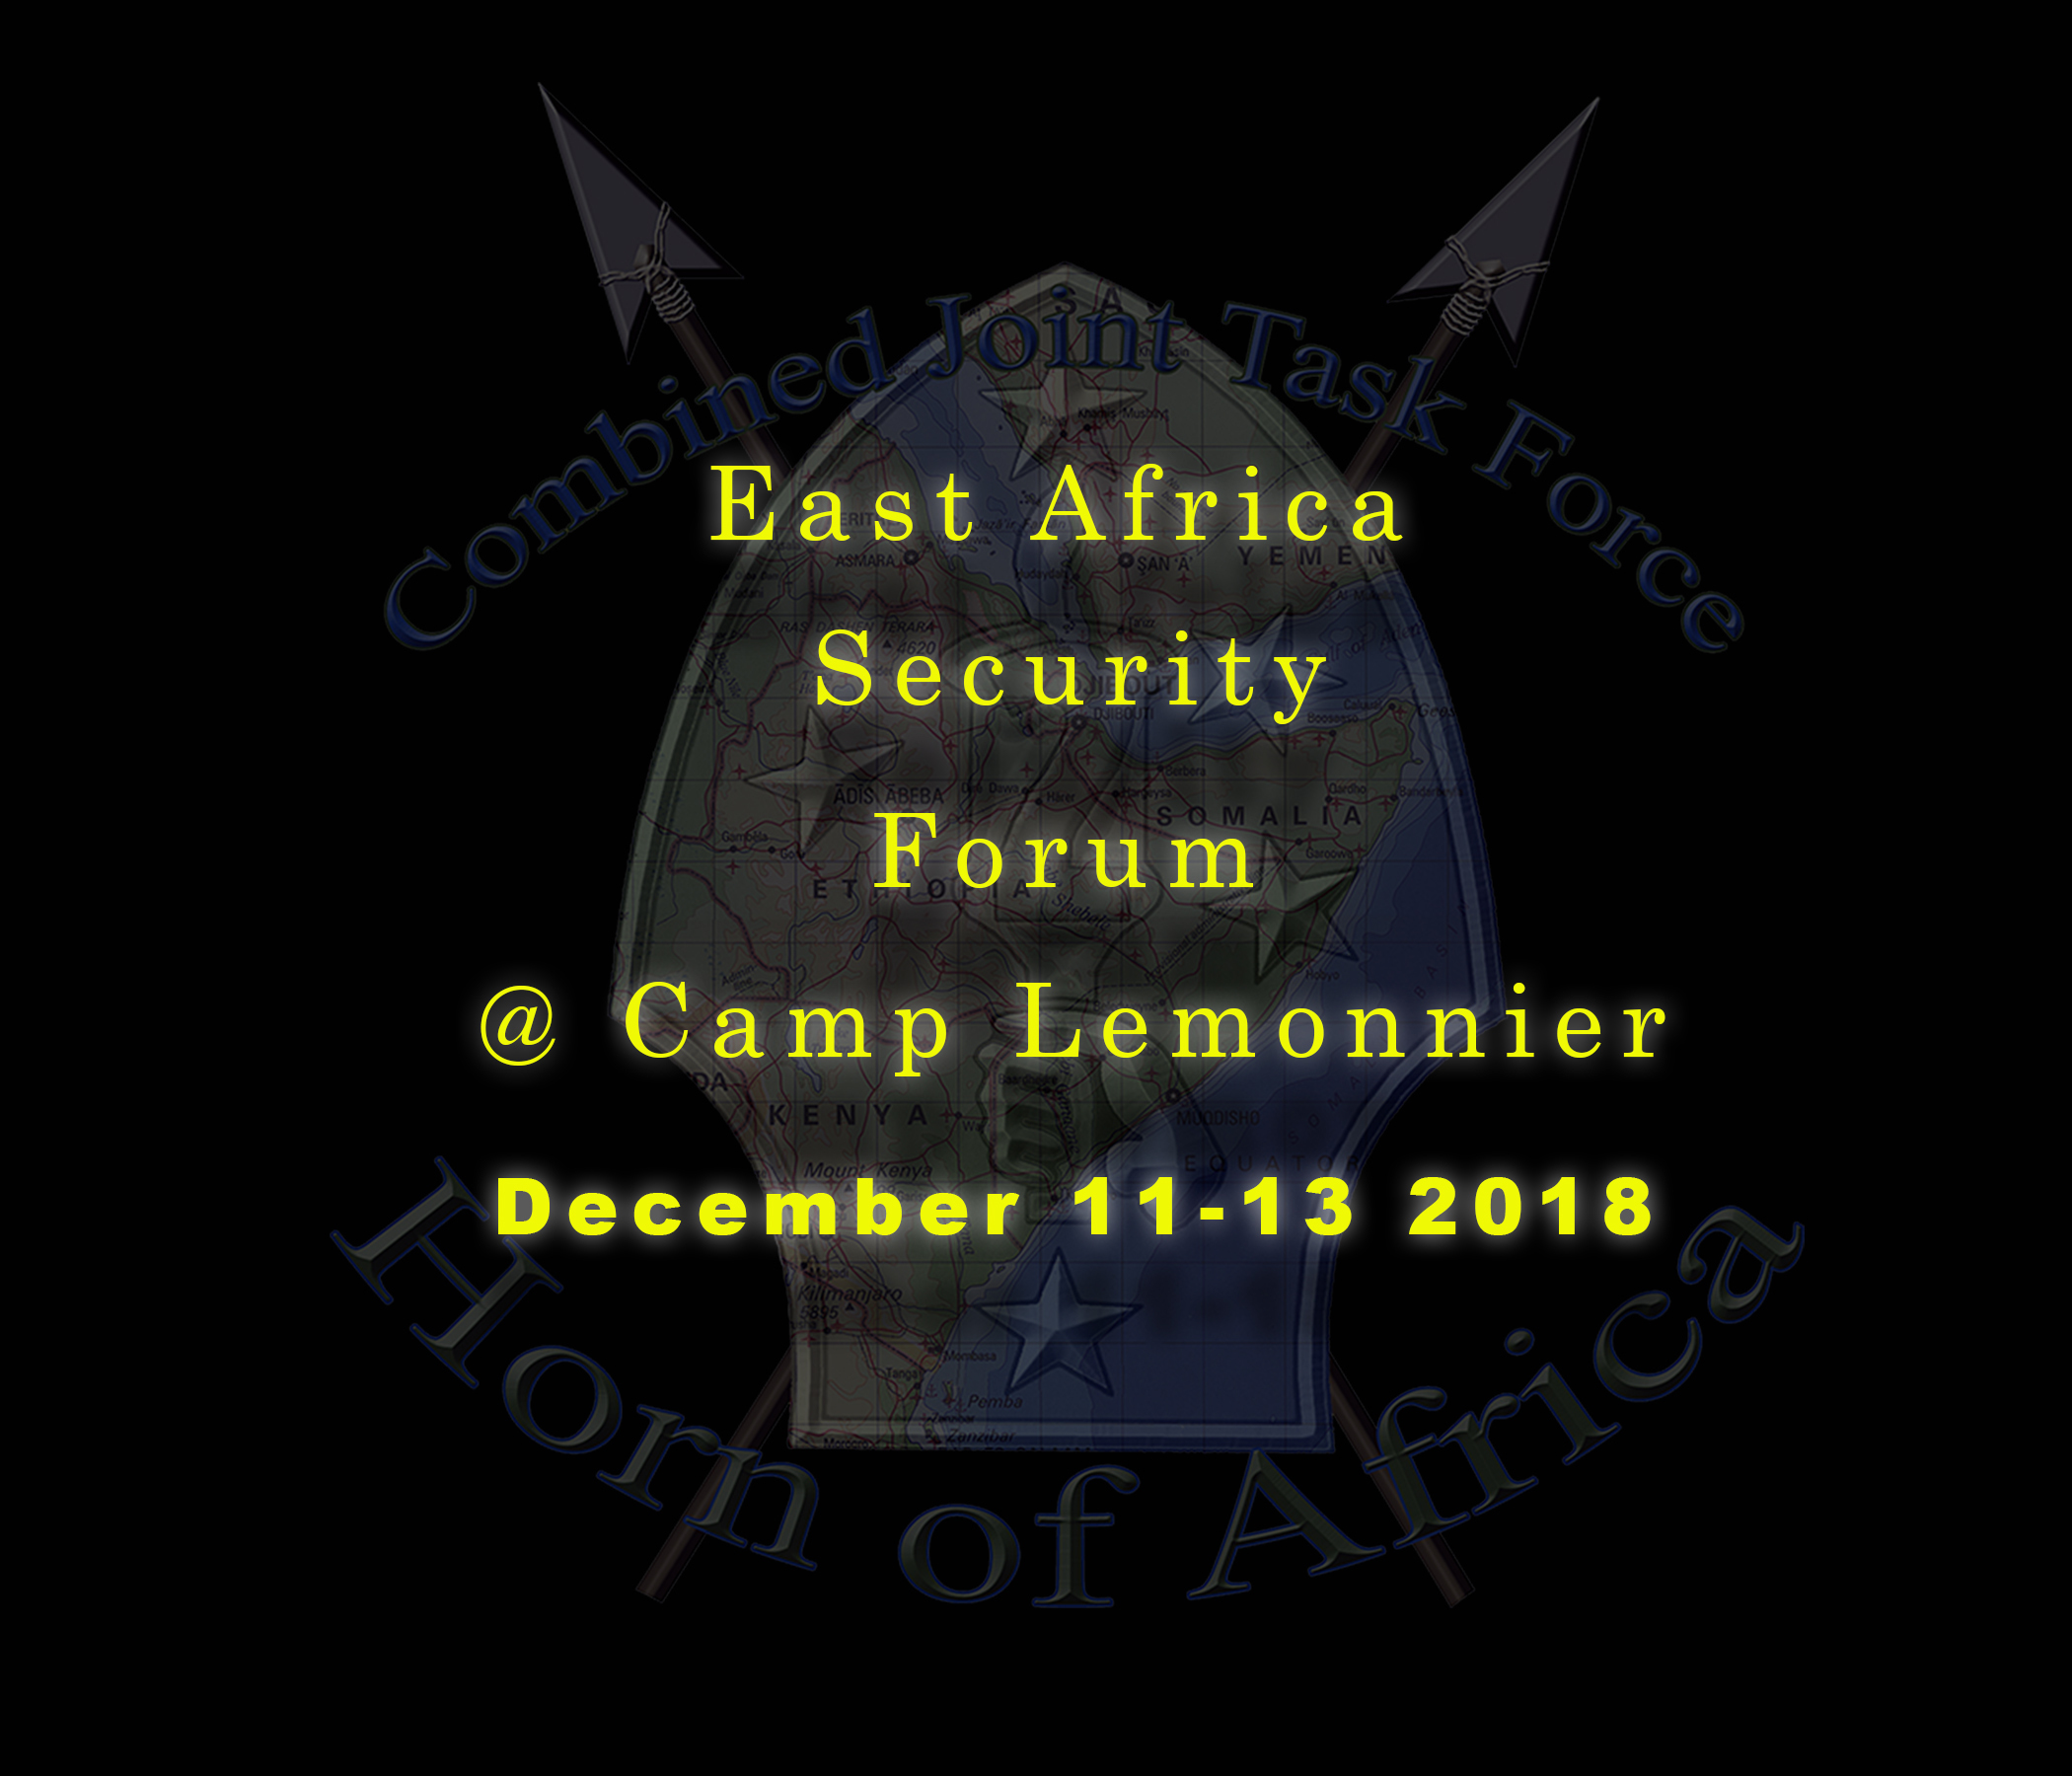 U.S. State Department personnel from 12 East Africa nations will join military leaders from Combined Joint Task Force-Horn of Africa at Camp Lemonnier, Djibouti Dec. 11-13, for the 2018 East Africa Security Forum.